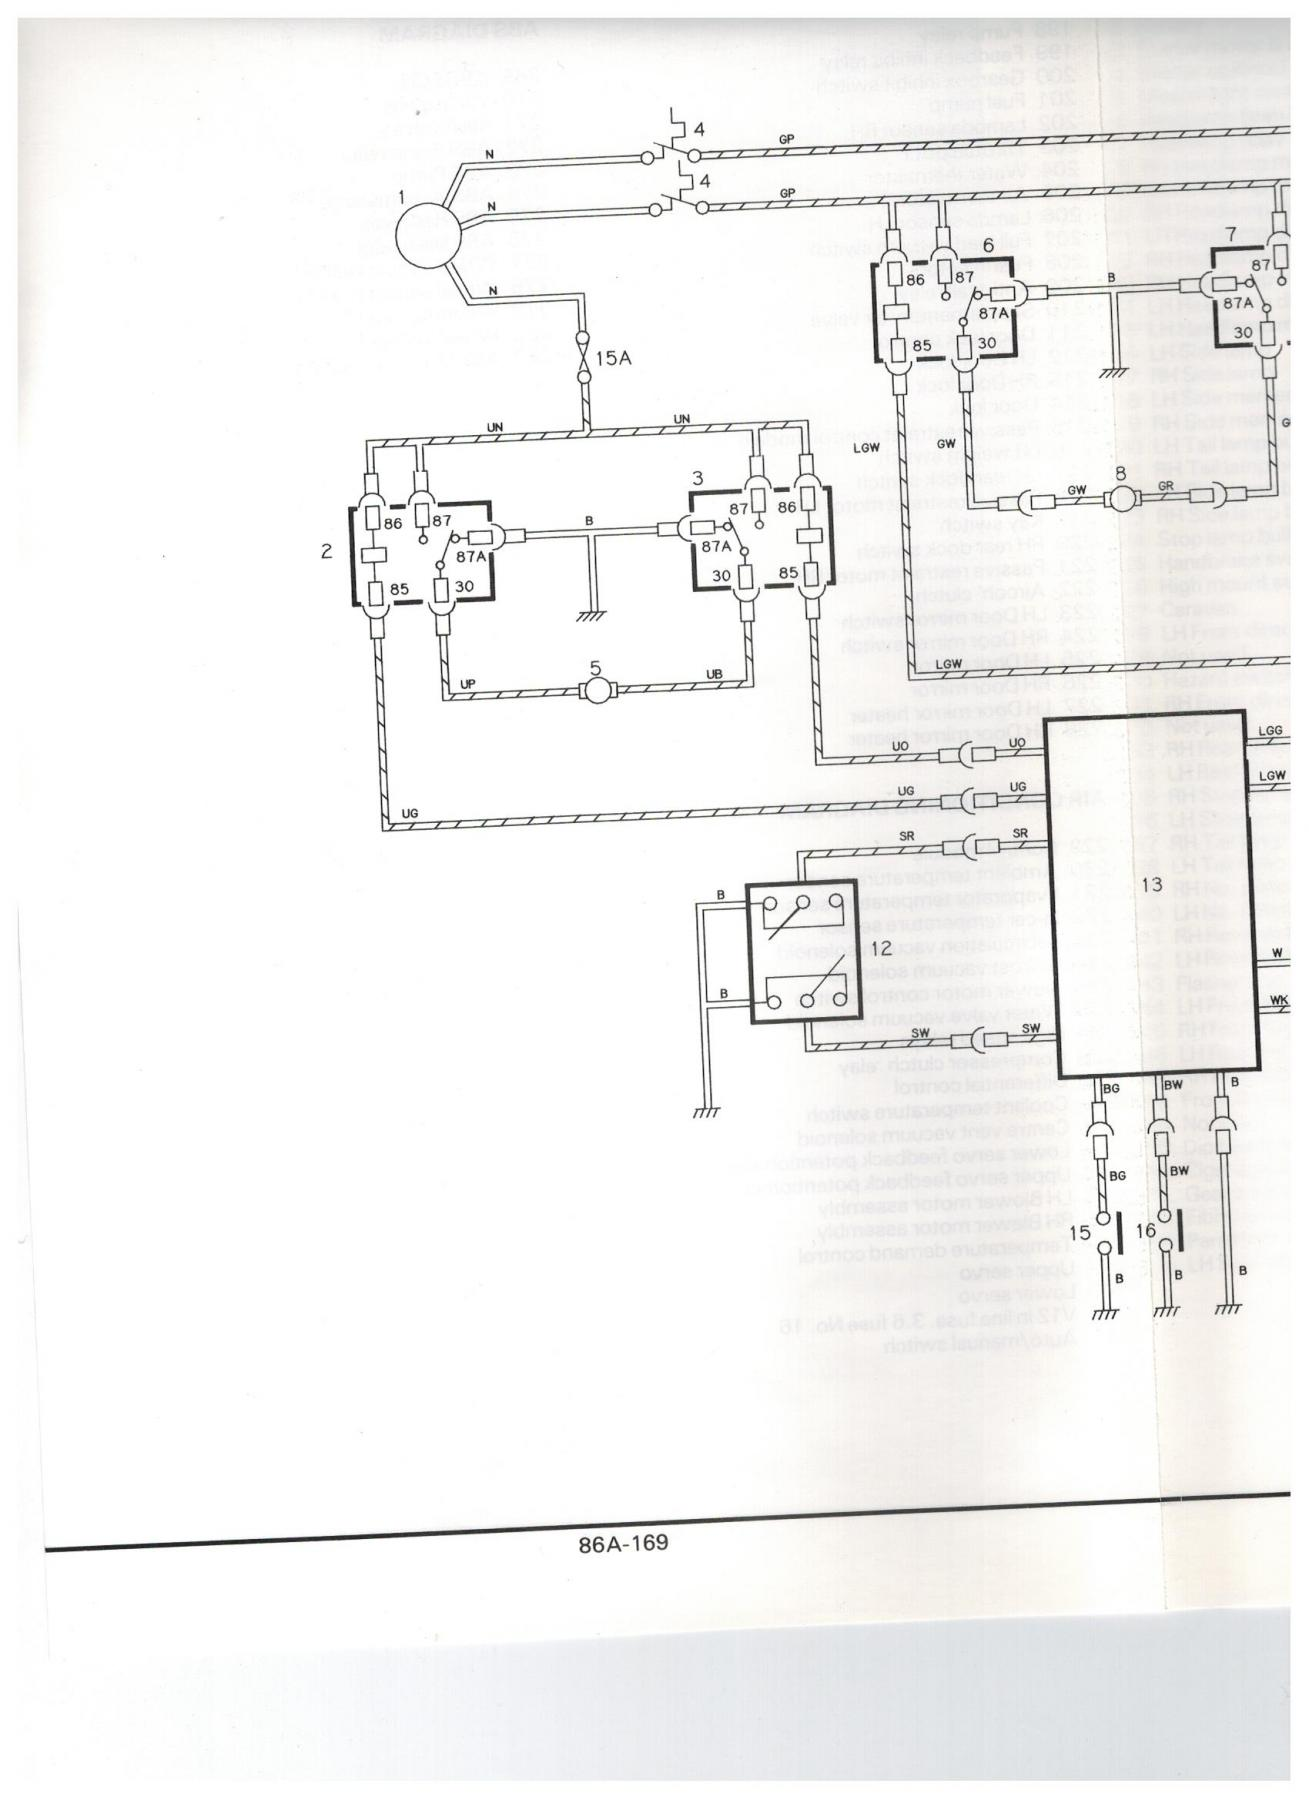 1989 ford f 150 wiring diagram delta monitor shower faucet diagrams headlight switch